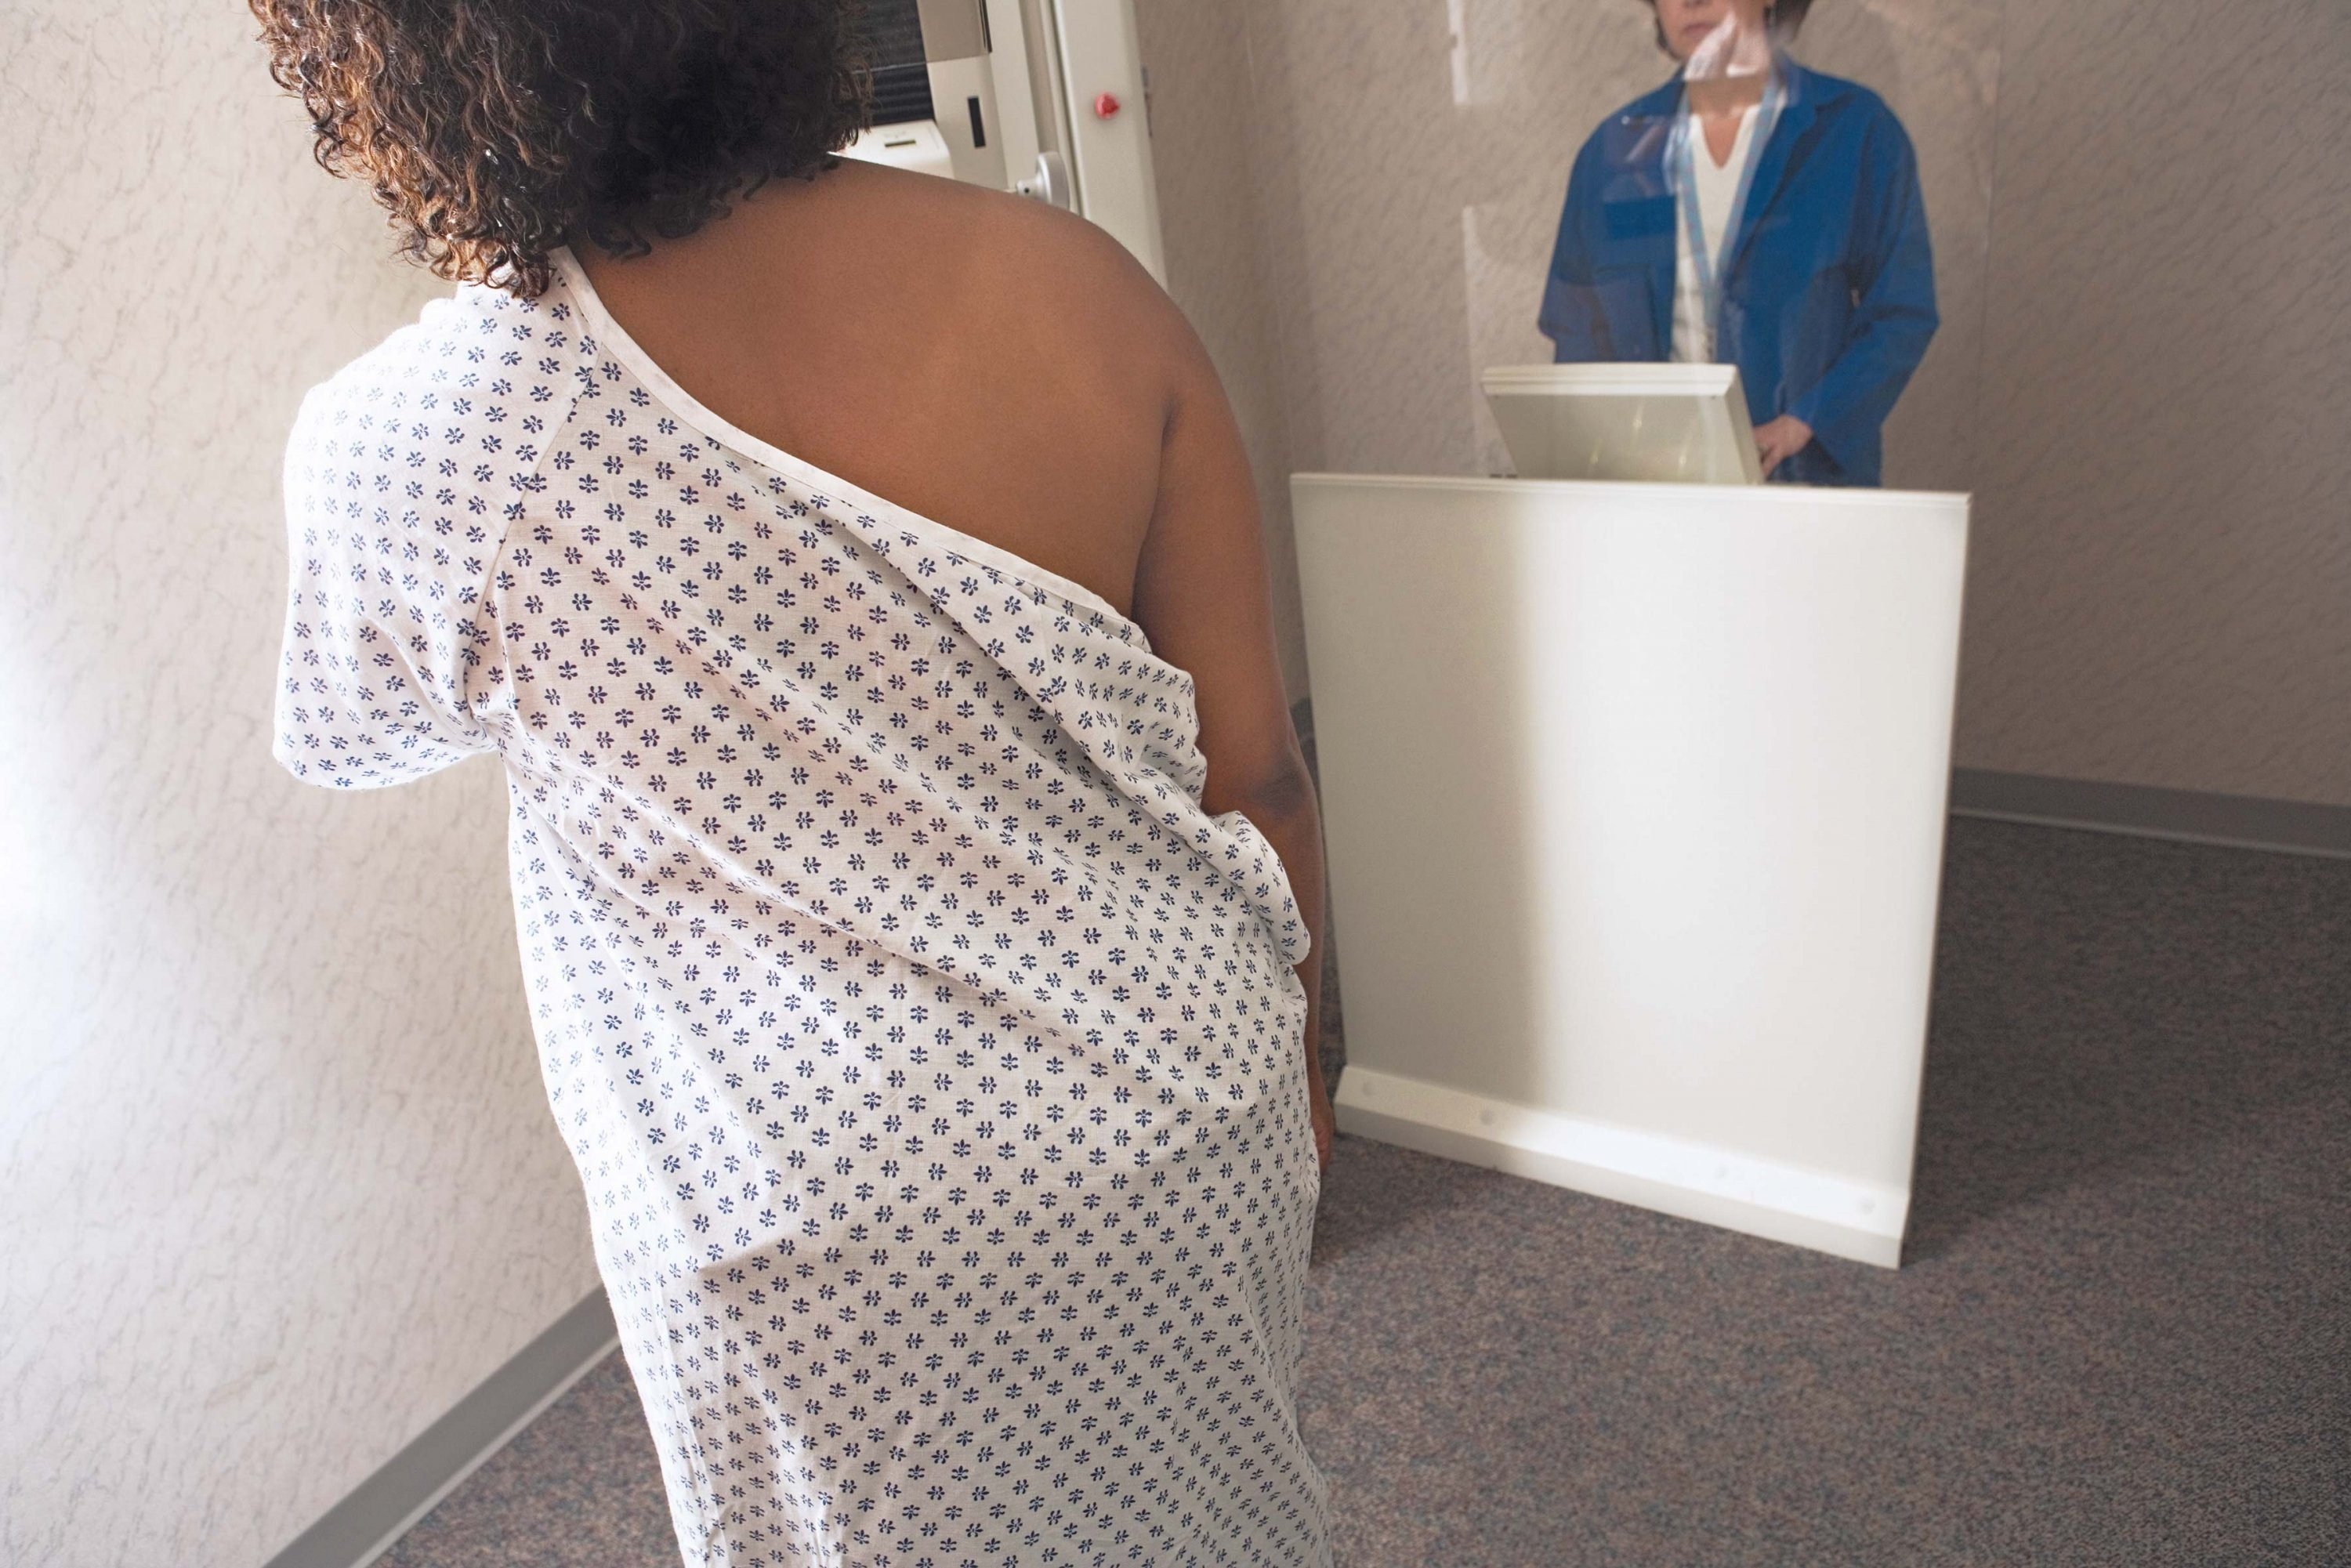 Shorter breast cancer treatment could hurt providers' bottom line